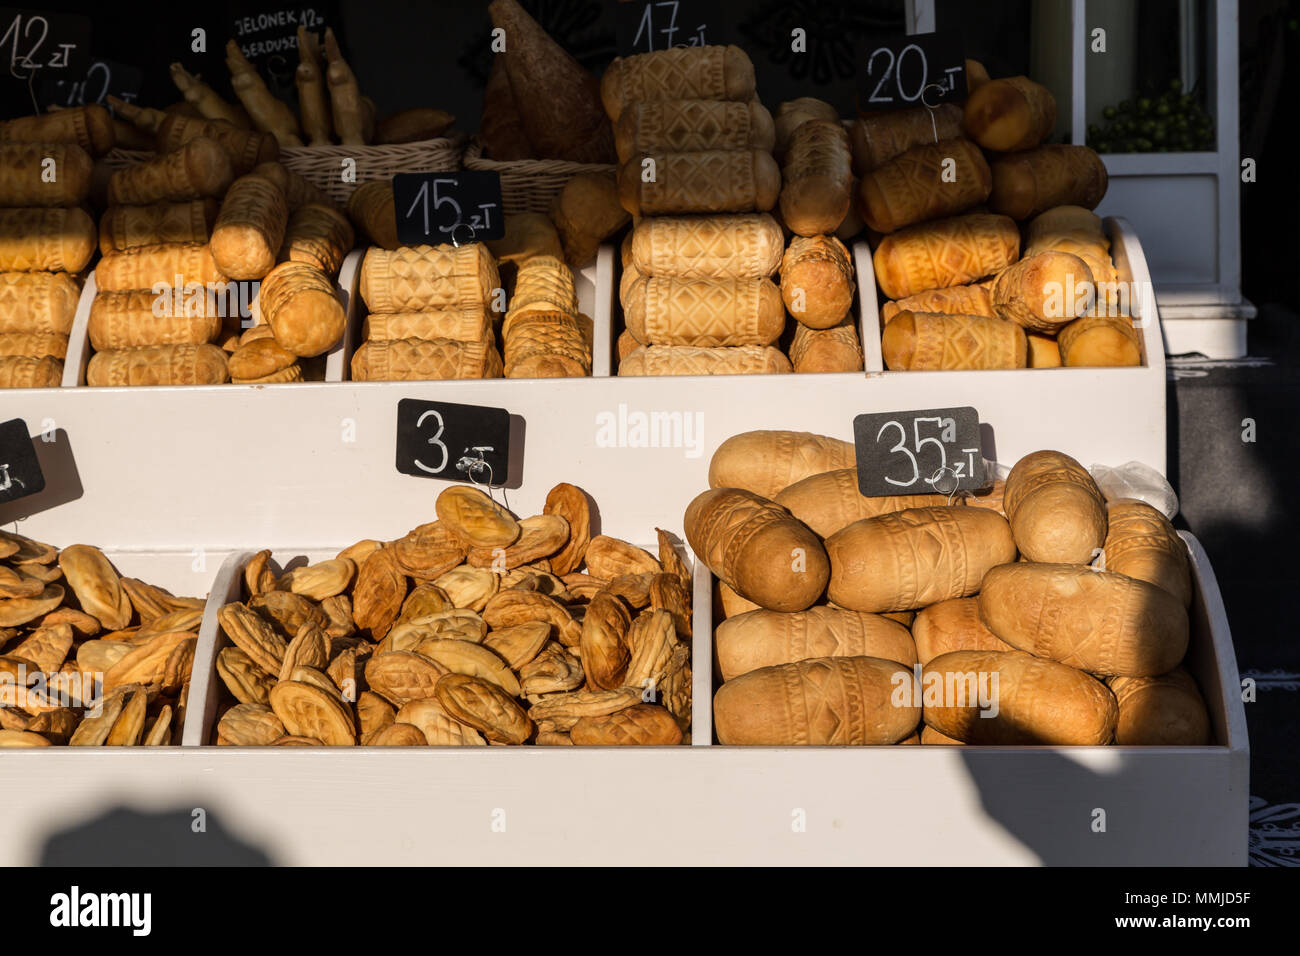 Oscypek, the traditional Polish cheese, Krakow, Poland - Stock Image